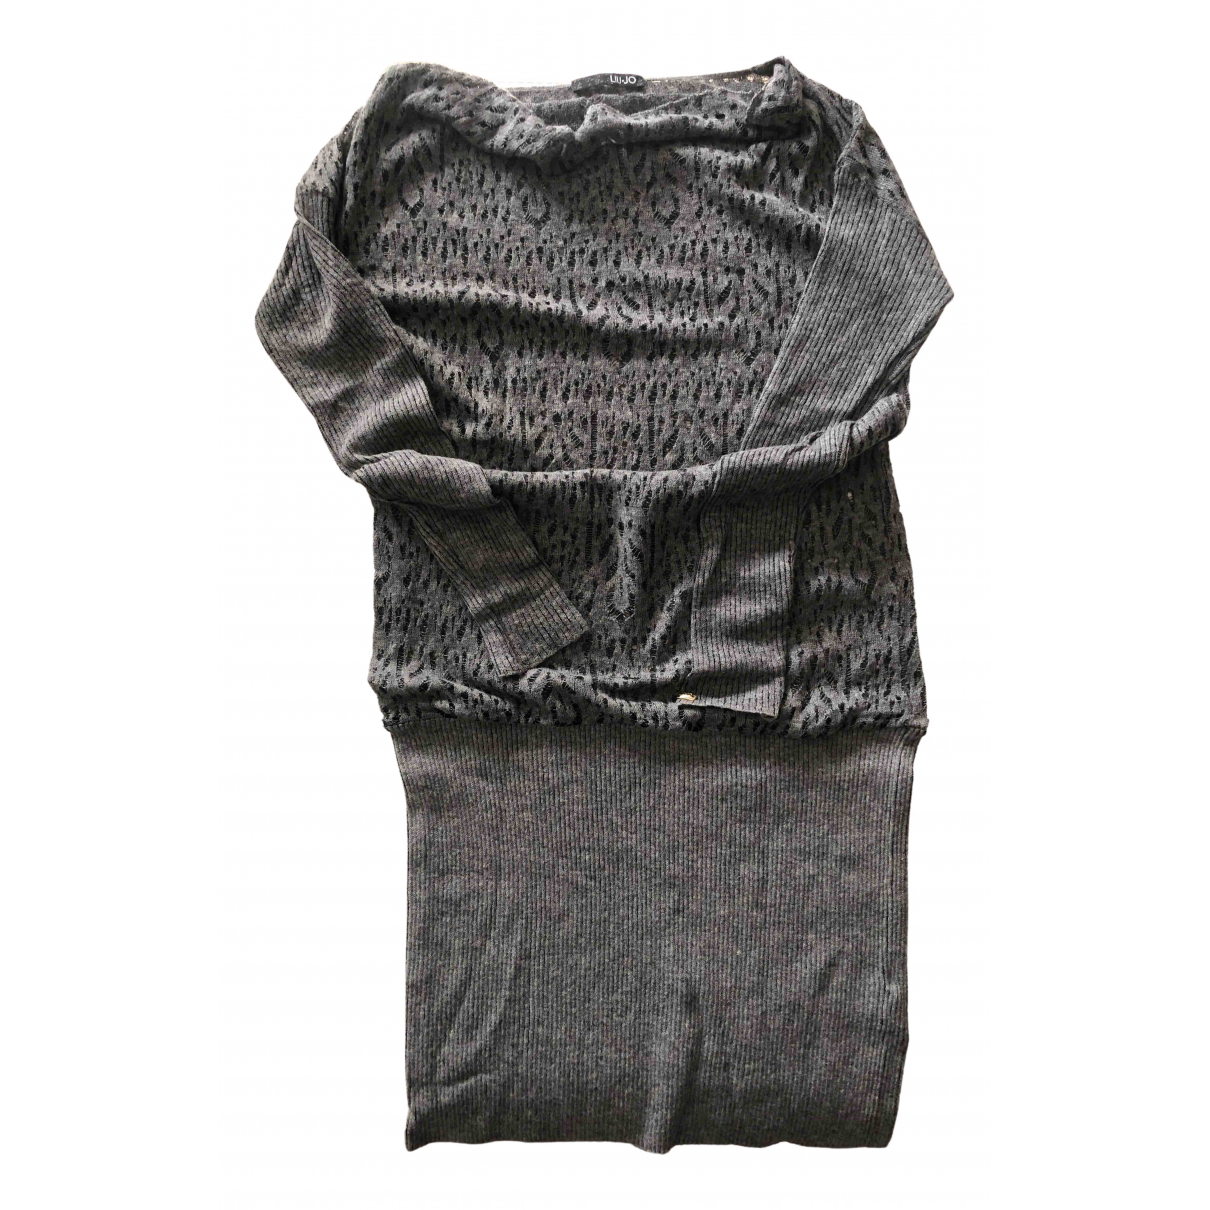 Liu.jo N Grey Wool dress for Women 42 IT